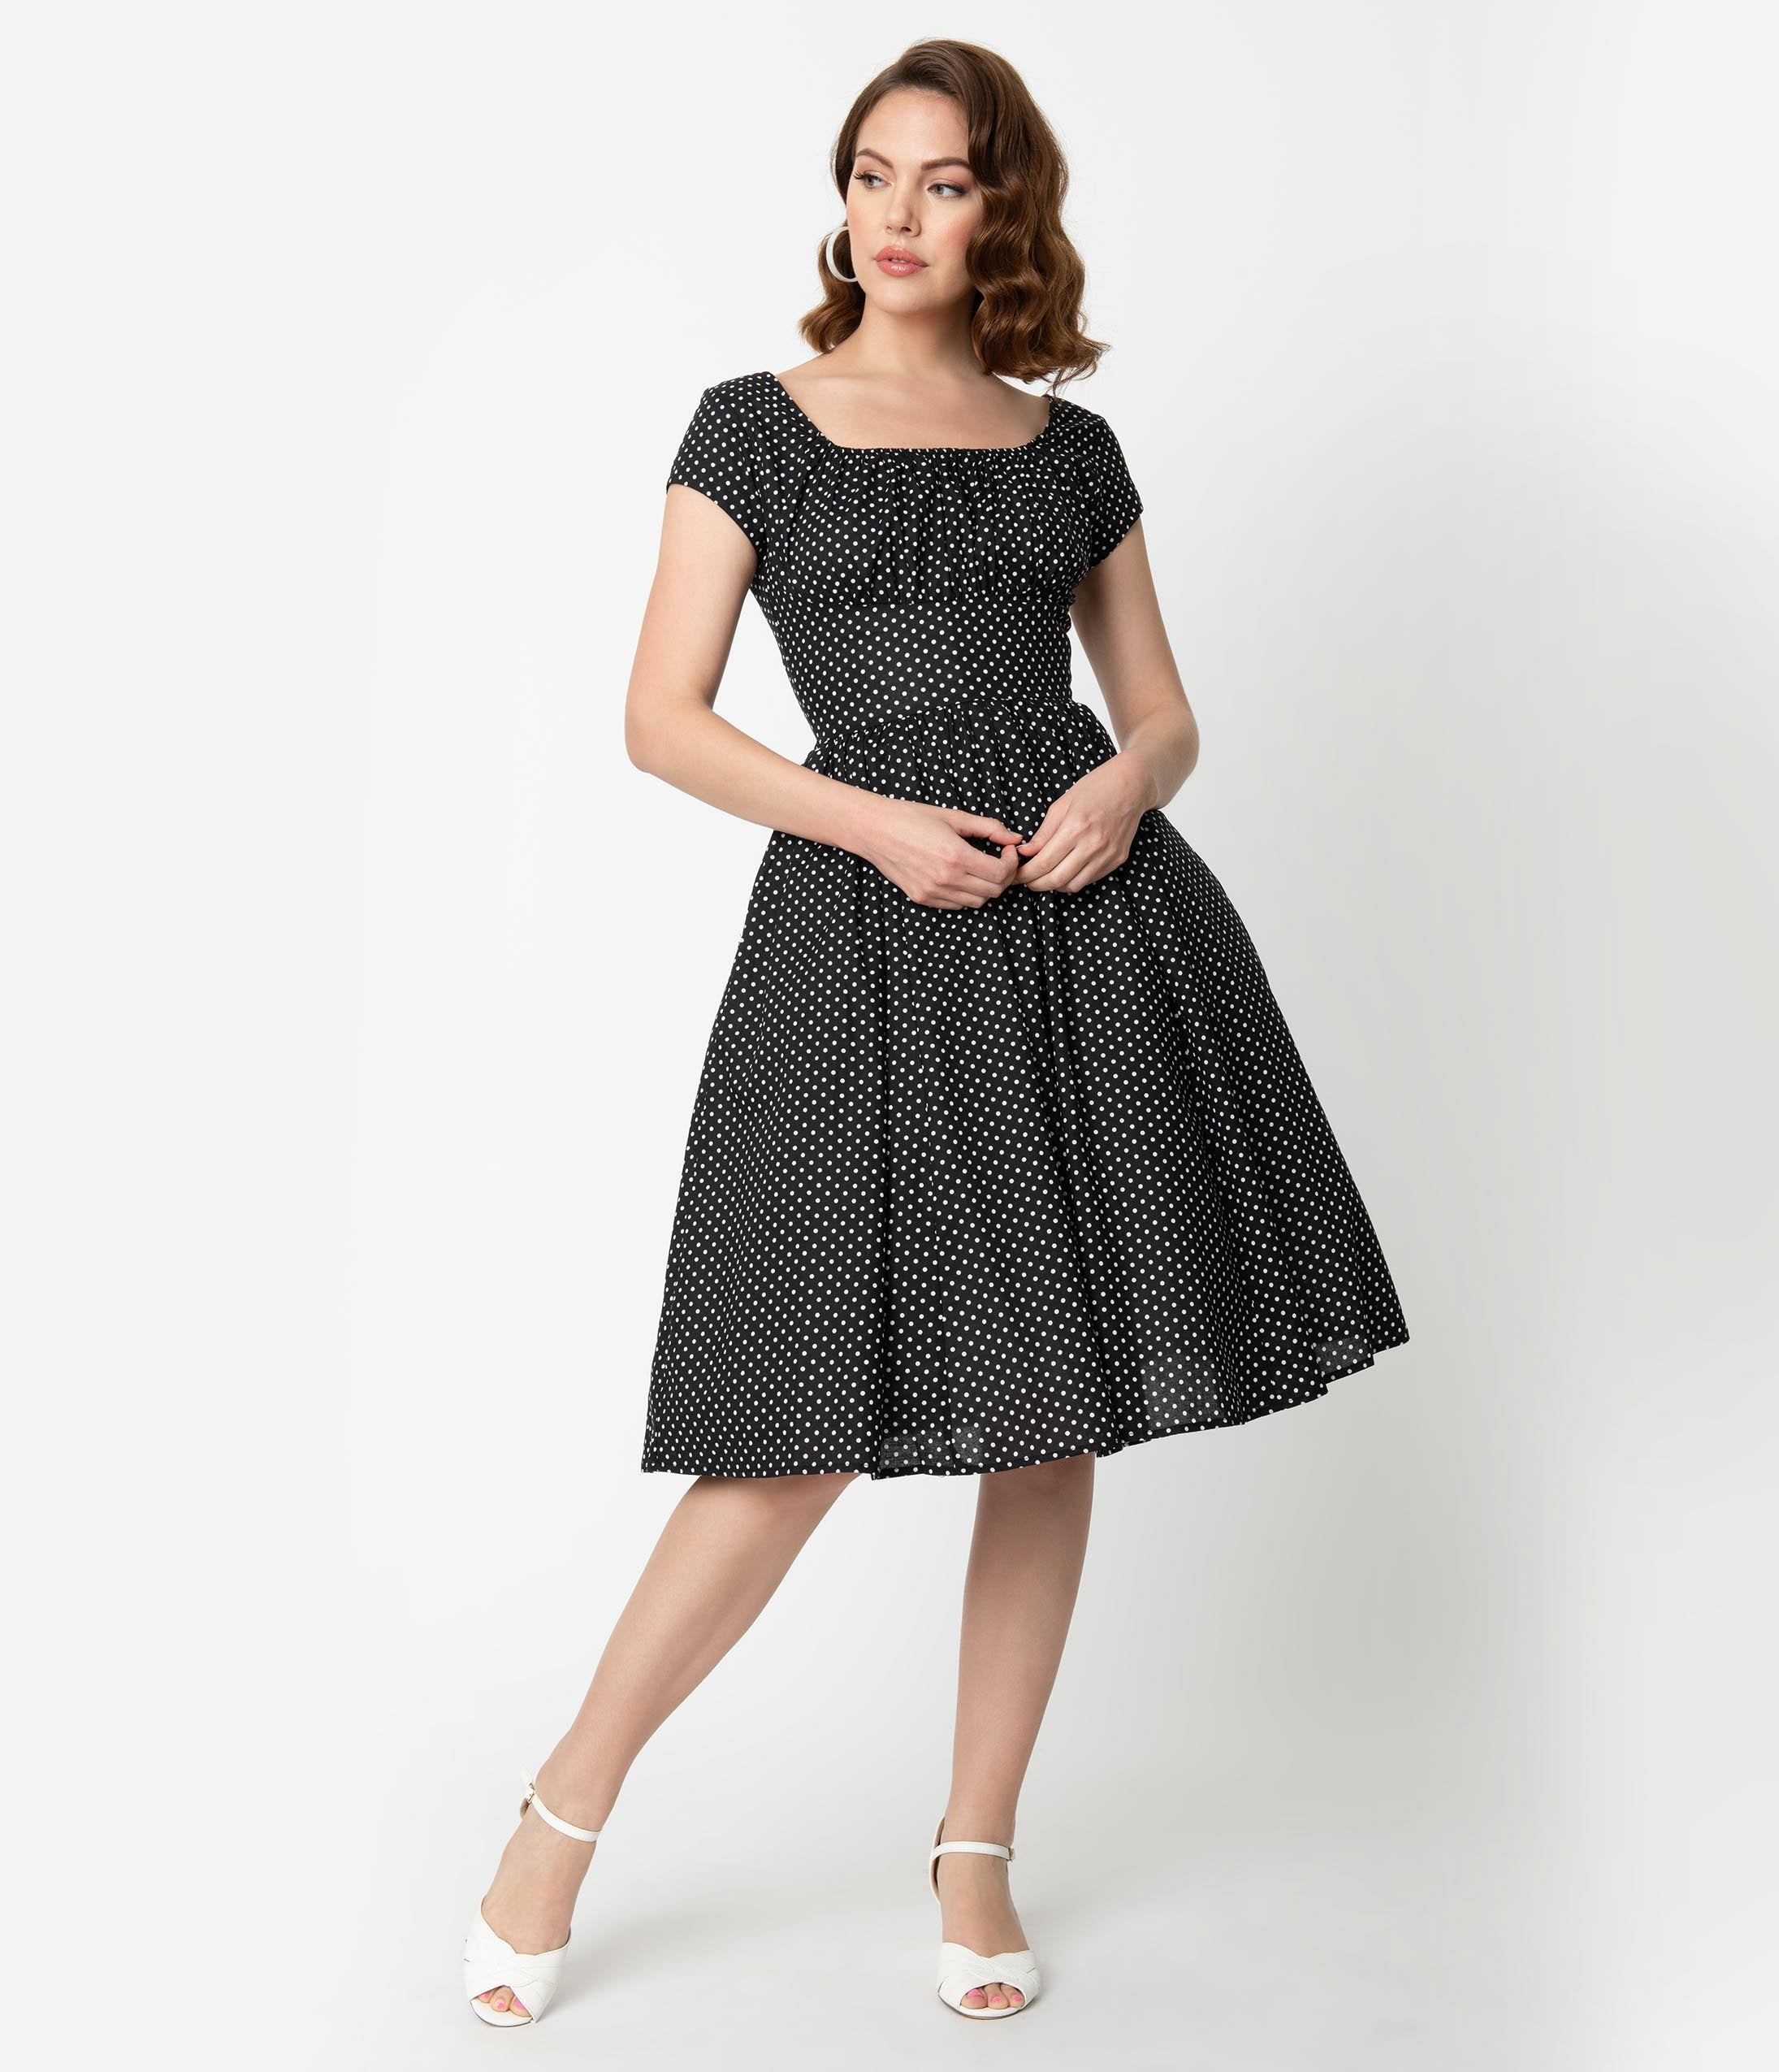 a35267cd4dc Vintage Polka Dot Dresses – 50s Spotty and Ditsy Prints Unique Vintage  Black White Dot Cap